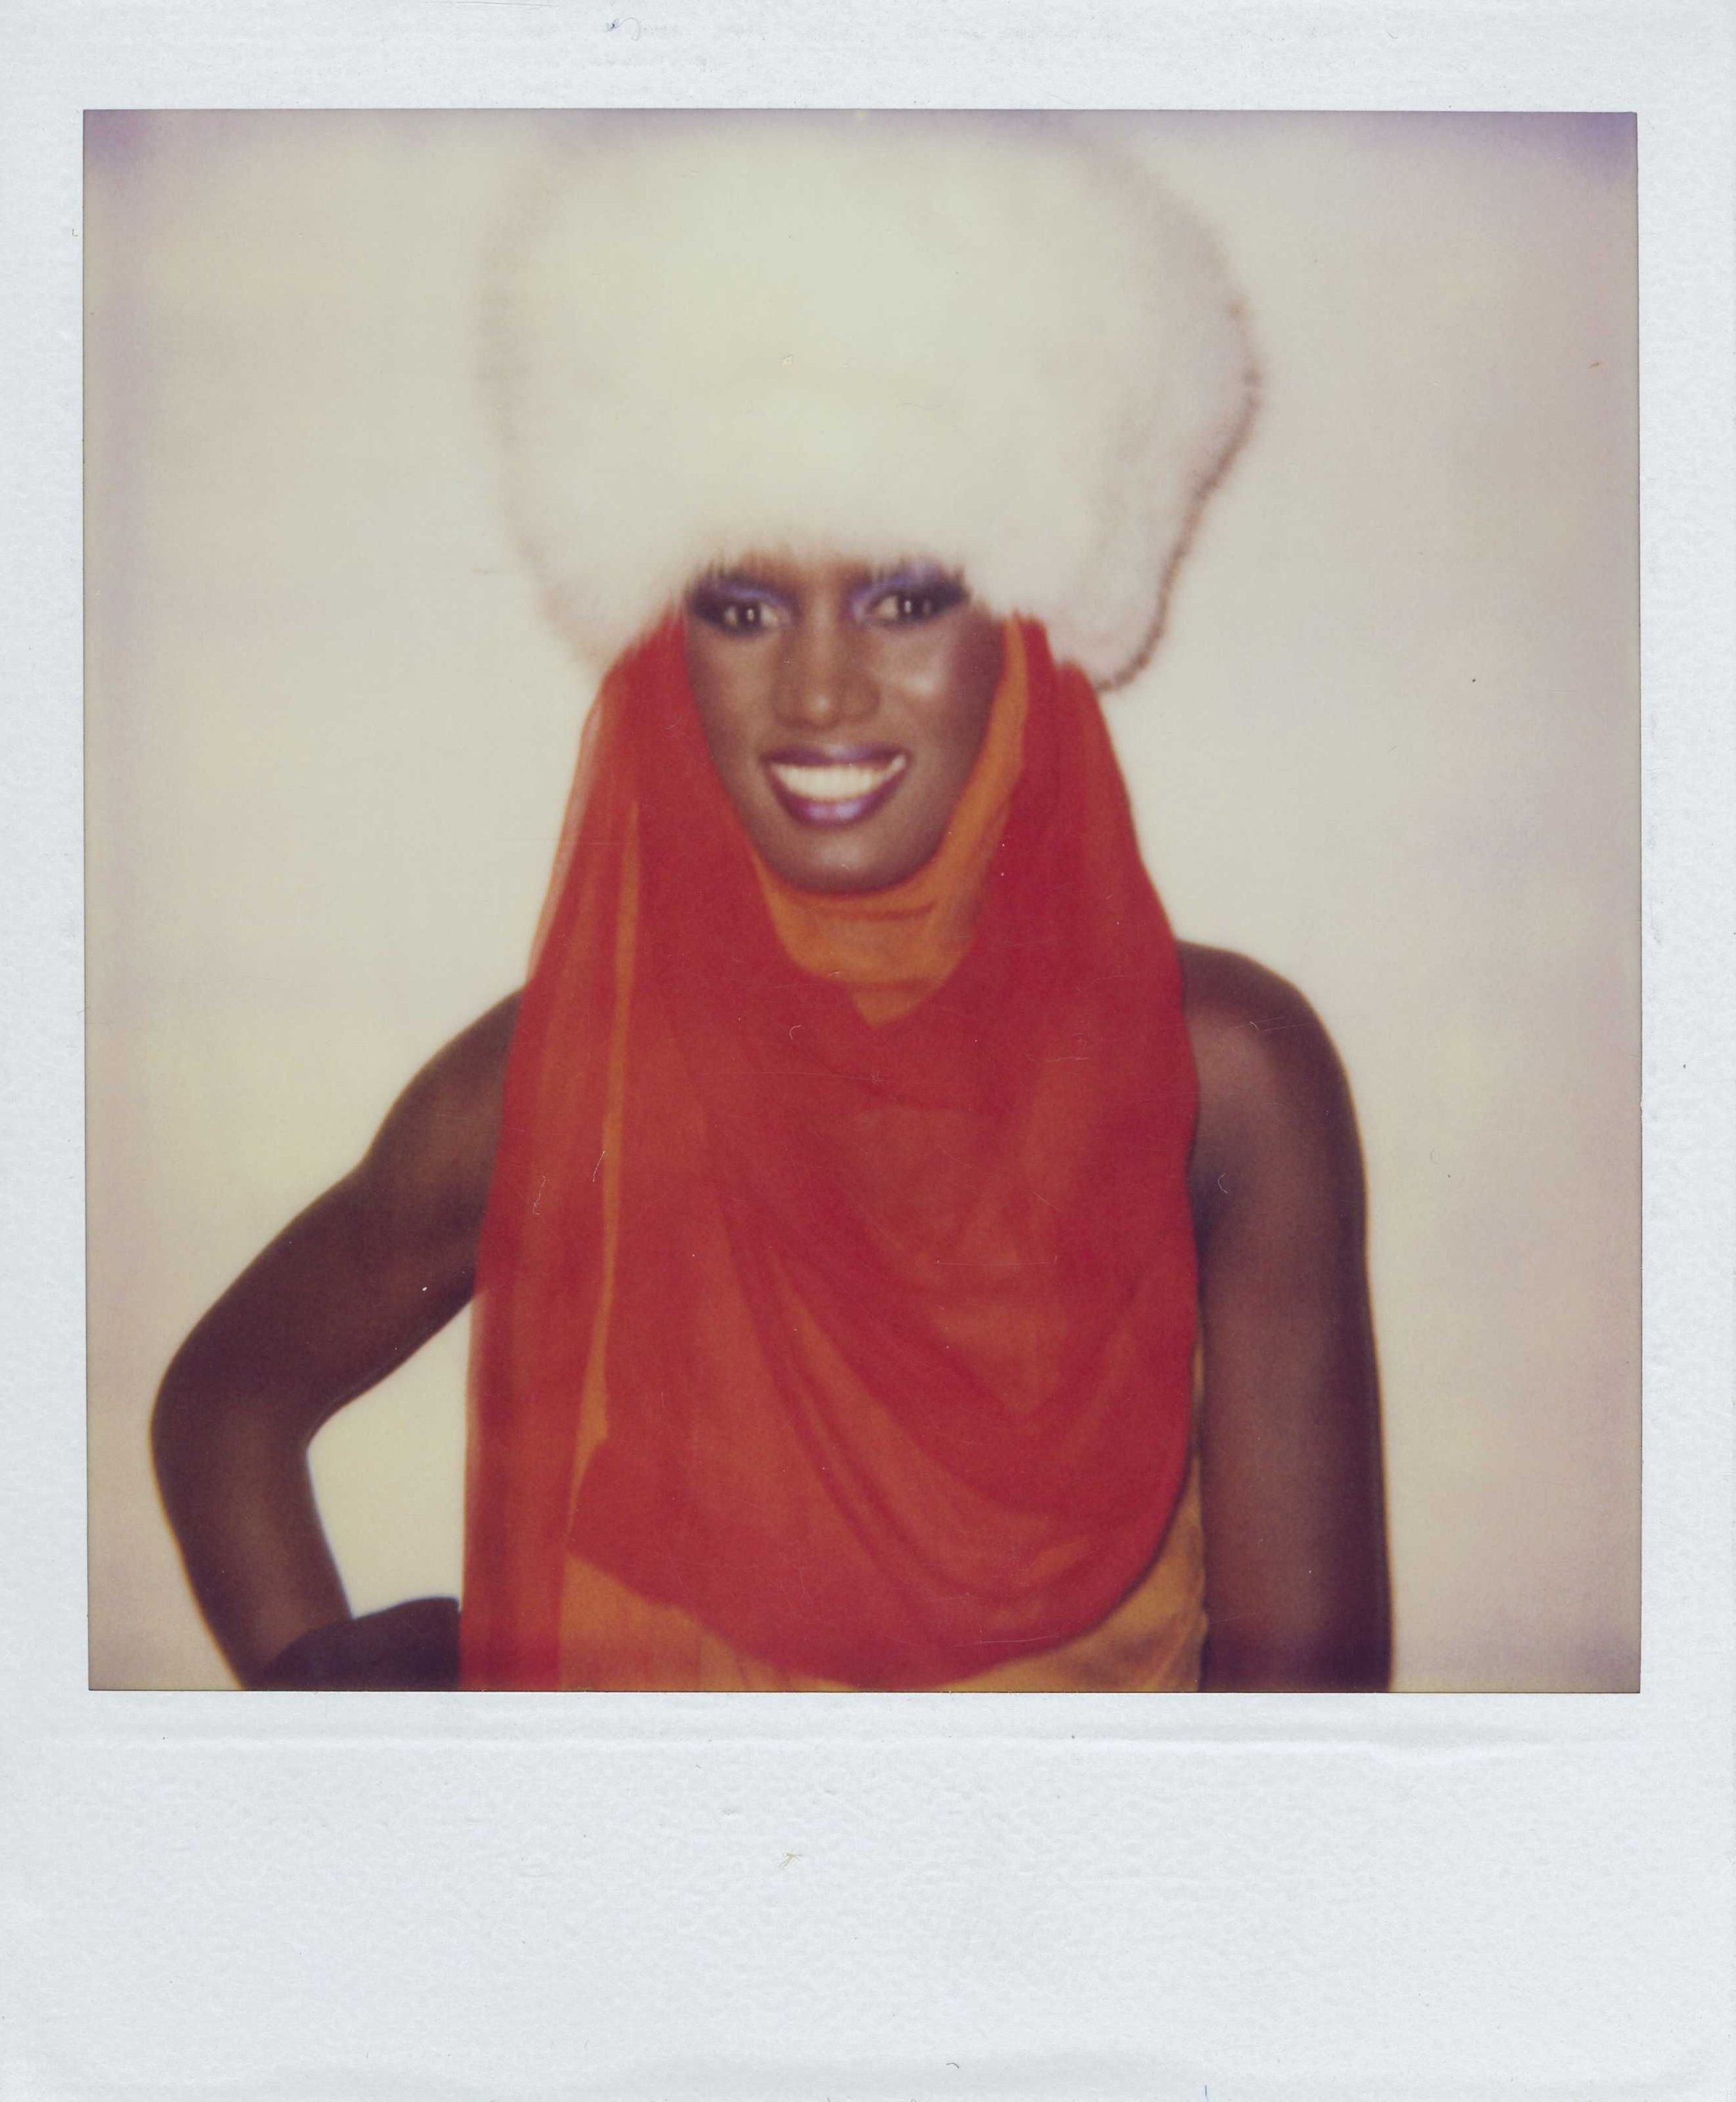 Portrait of Grace Jones by Andy Warhol, source: https://www.pinterest.co.uk/pin/329607266474523854/?lp=true